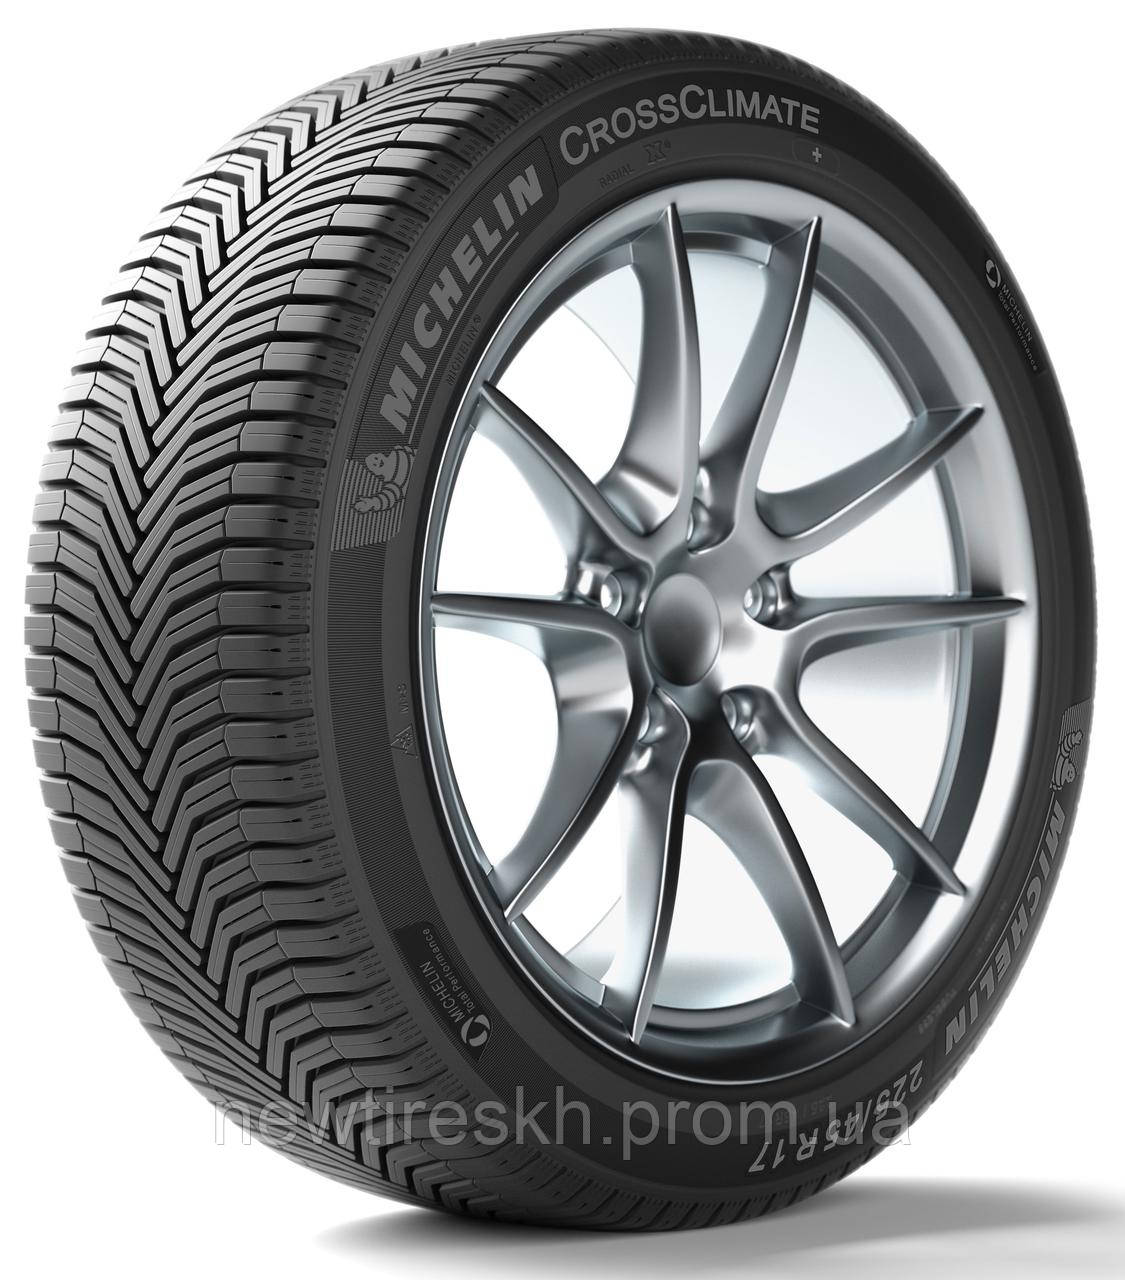 Michelin CrossClimate plus 215/60 R16 99V XL